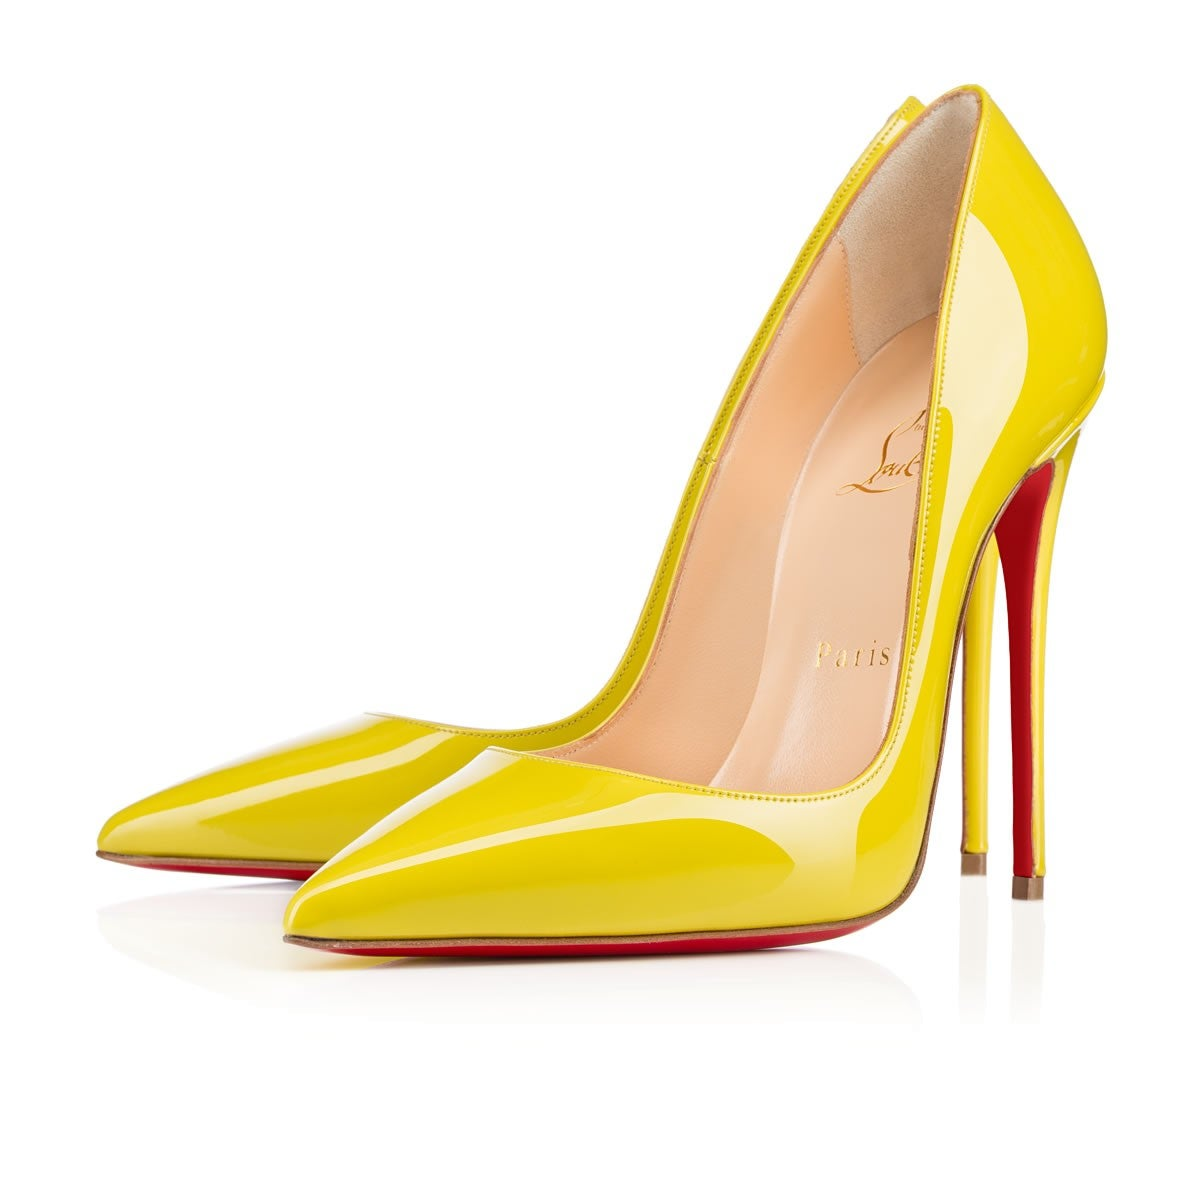 52f611a51a1b Image of red bottom shoes so kate patent leather pumps yellow jpg 1000x1000 Red  bottom shoes